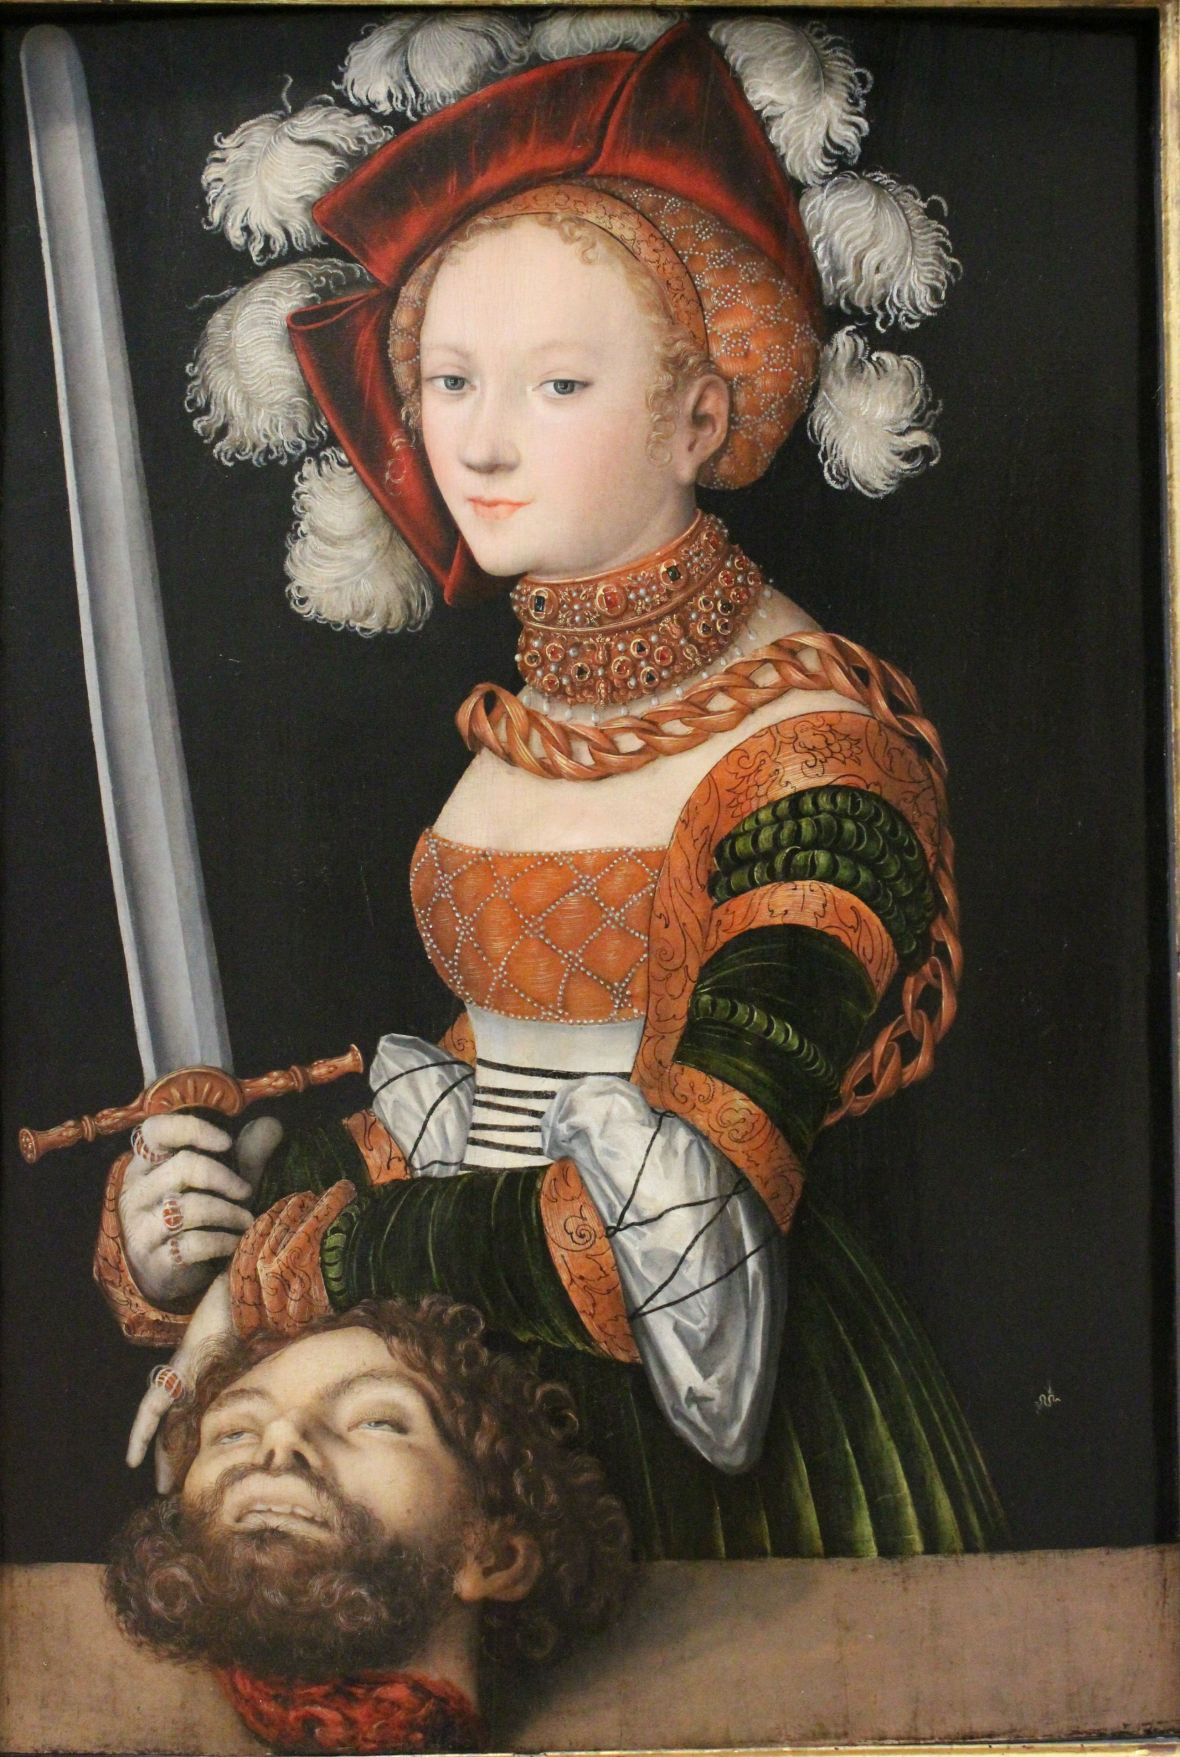 Lucas Cranach the Elder, Judith with the Head of Holofernes, 1530